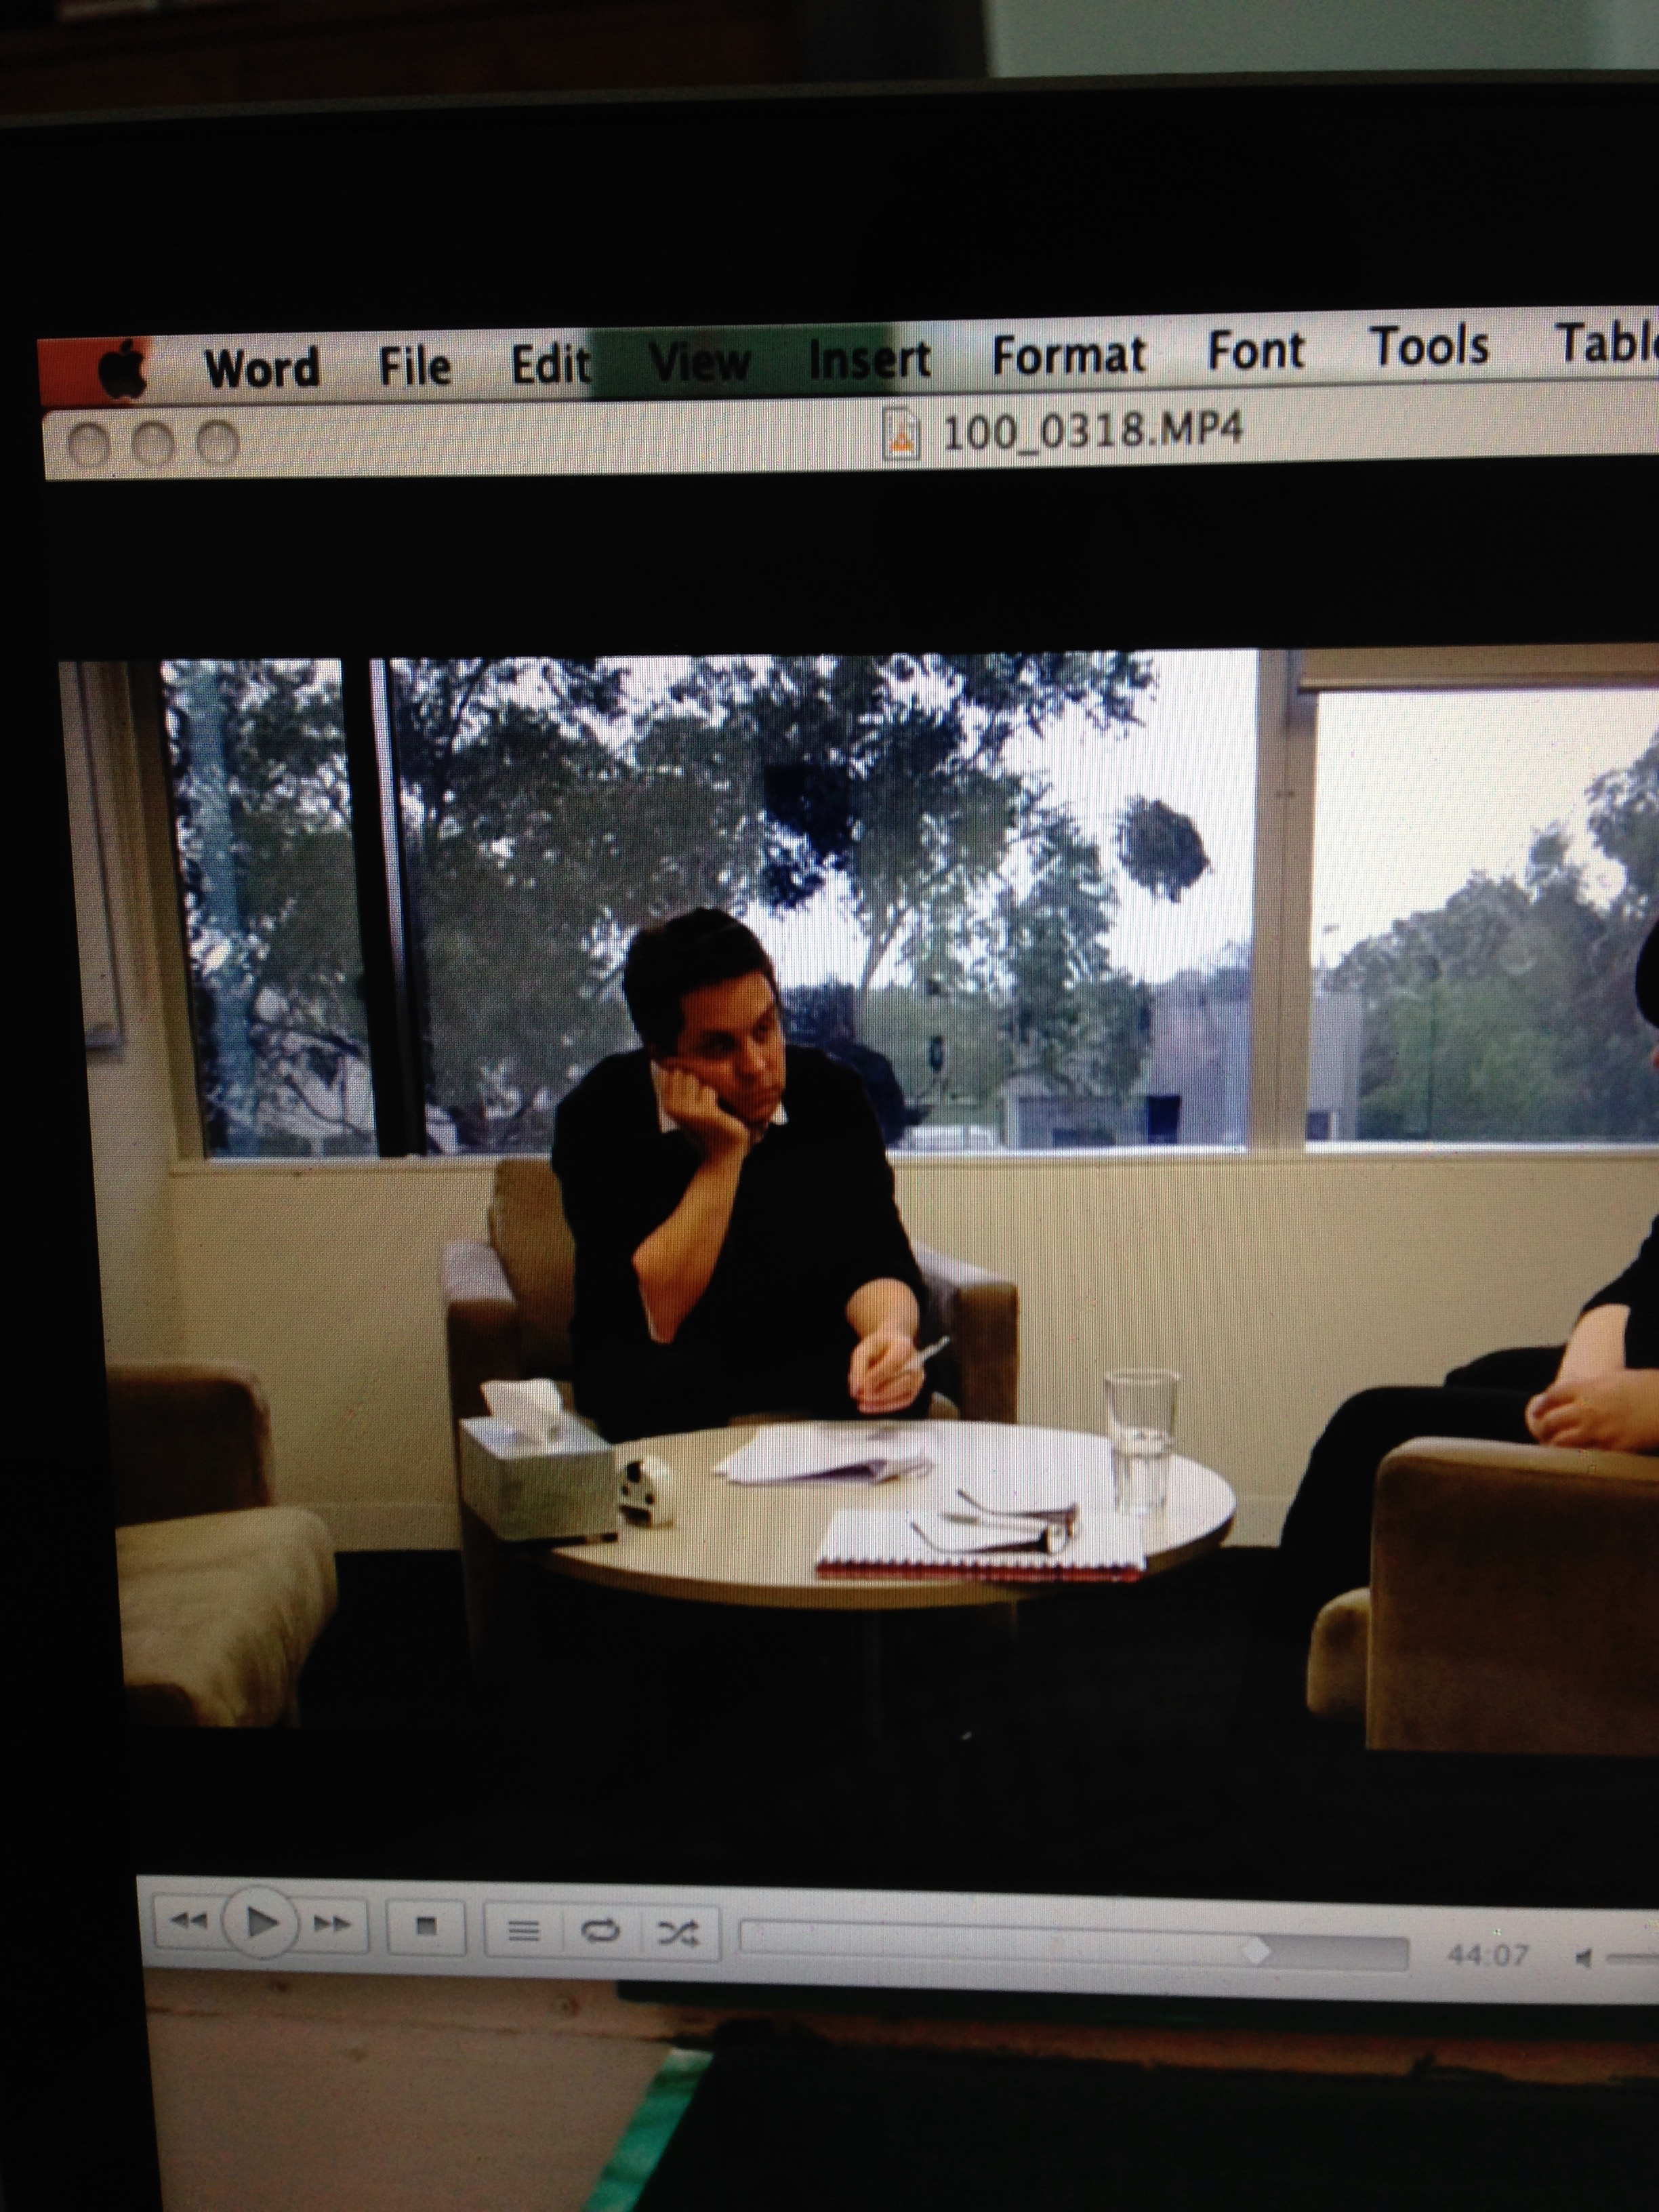 VIDEO RECORDING OF Practice tHERAPY SESSIONS: I THINK I SHOULD IMPROVE MY BODY LANGUAGE